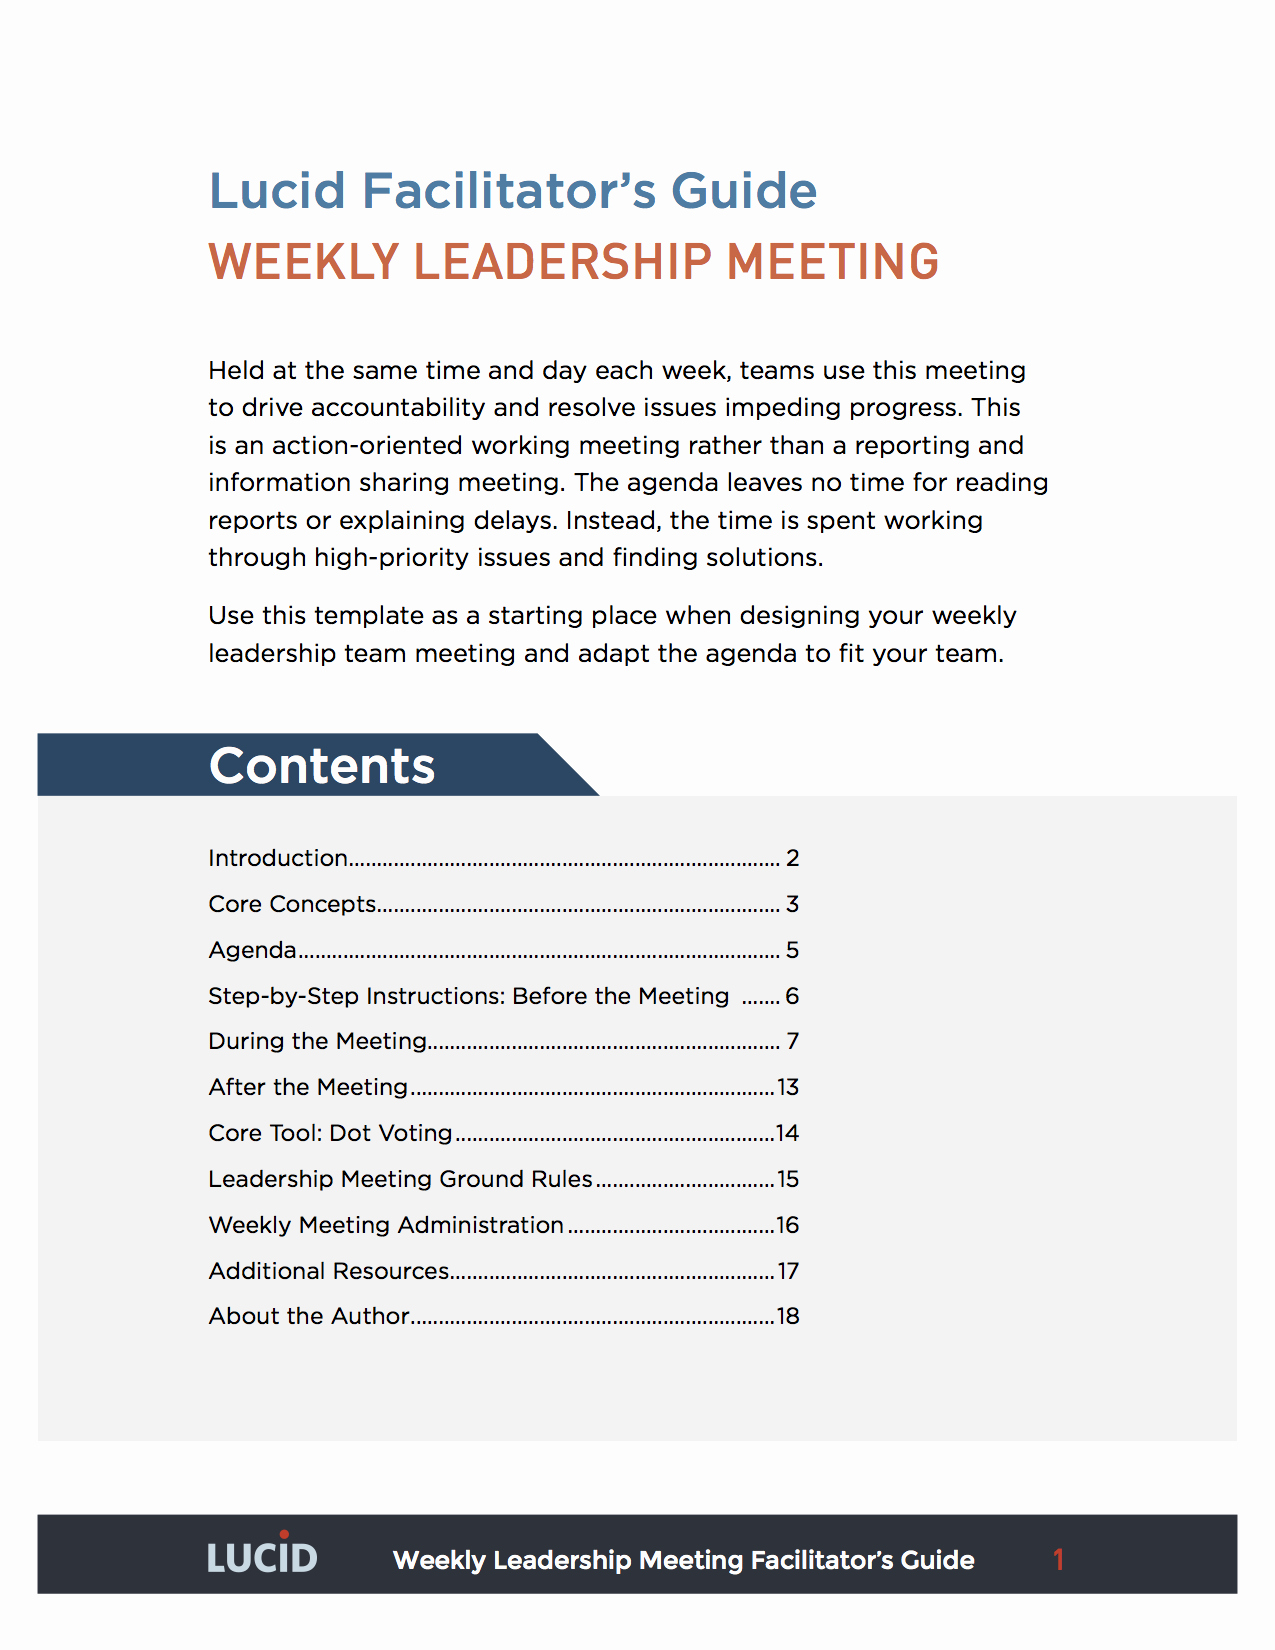 Weekly Team Meeting Agenda Template New Weekly Leadership Team Meeting